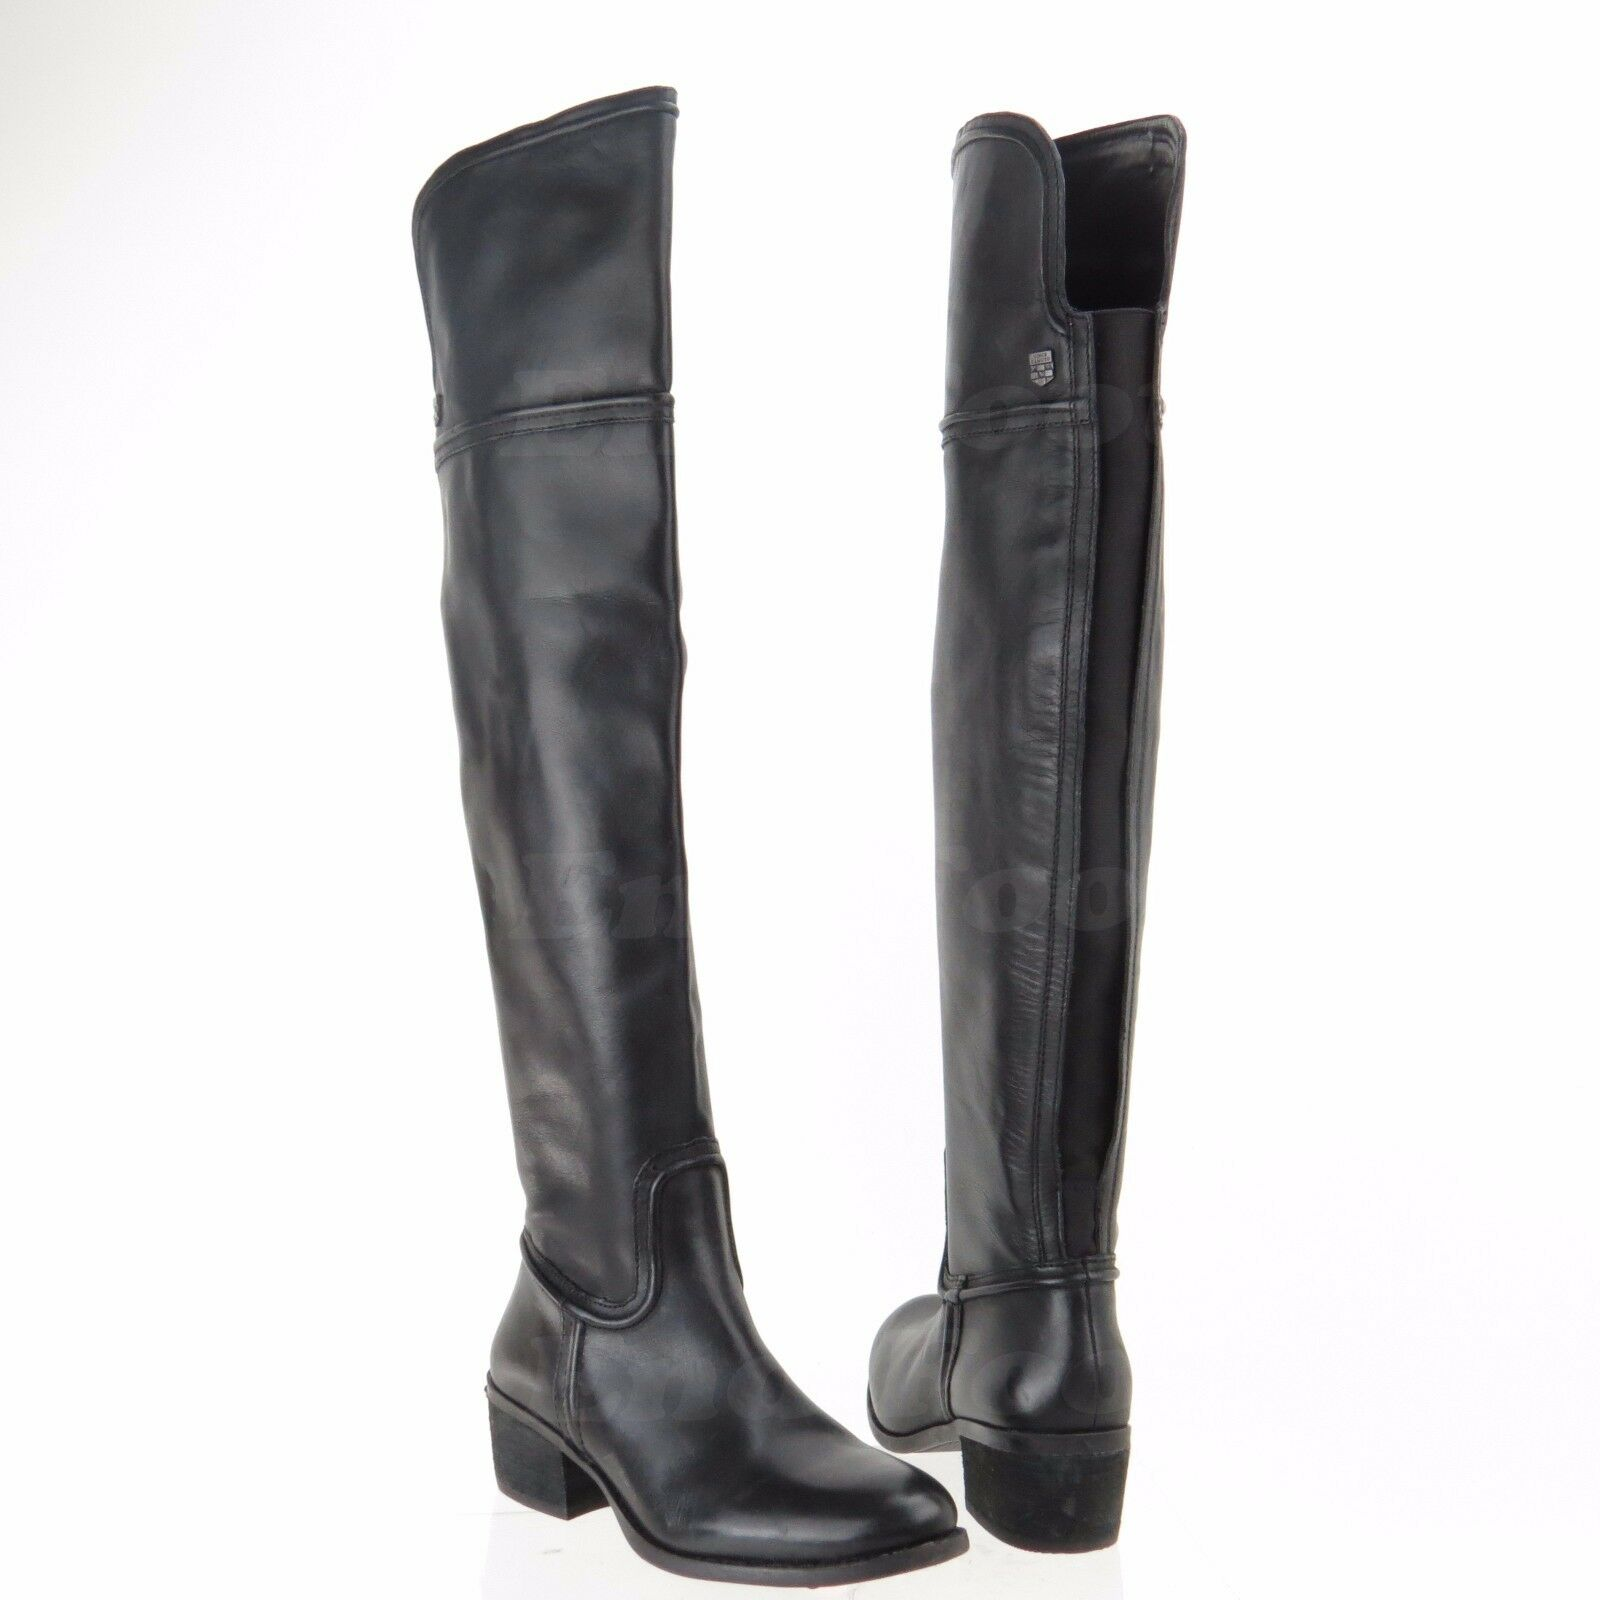 Vince Camuto Baldwin Women's Black Leather Tall Over the Knee Boots Sz 6 M NEW